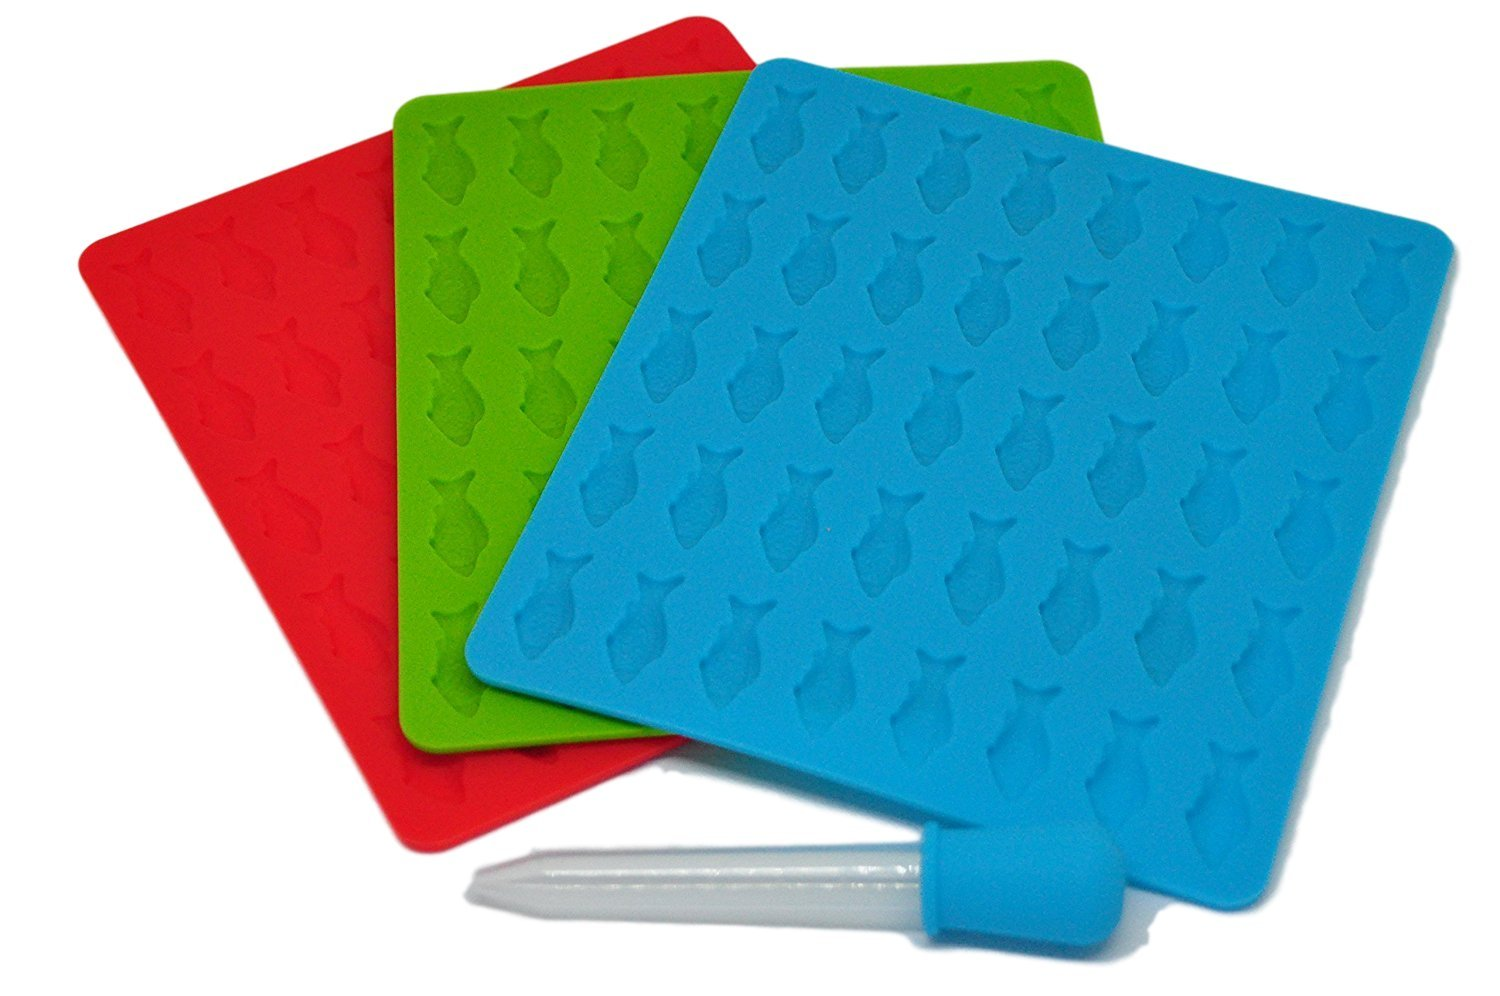 Trusty Goods' ALL-NEW, One-of-a-Kind Gummy Fish Silicone Candy Mold: 3 Pack - 1 Red, 1 Green, and 1 Blue Tray Per Set + 1 FREE Dropper + FREE Recipe PDF